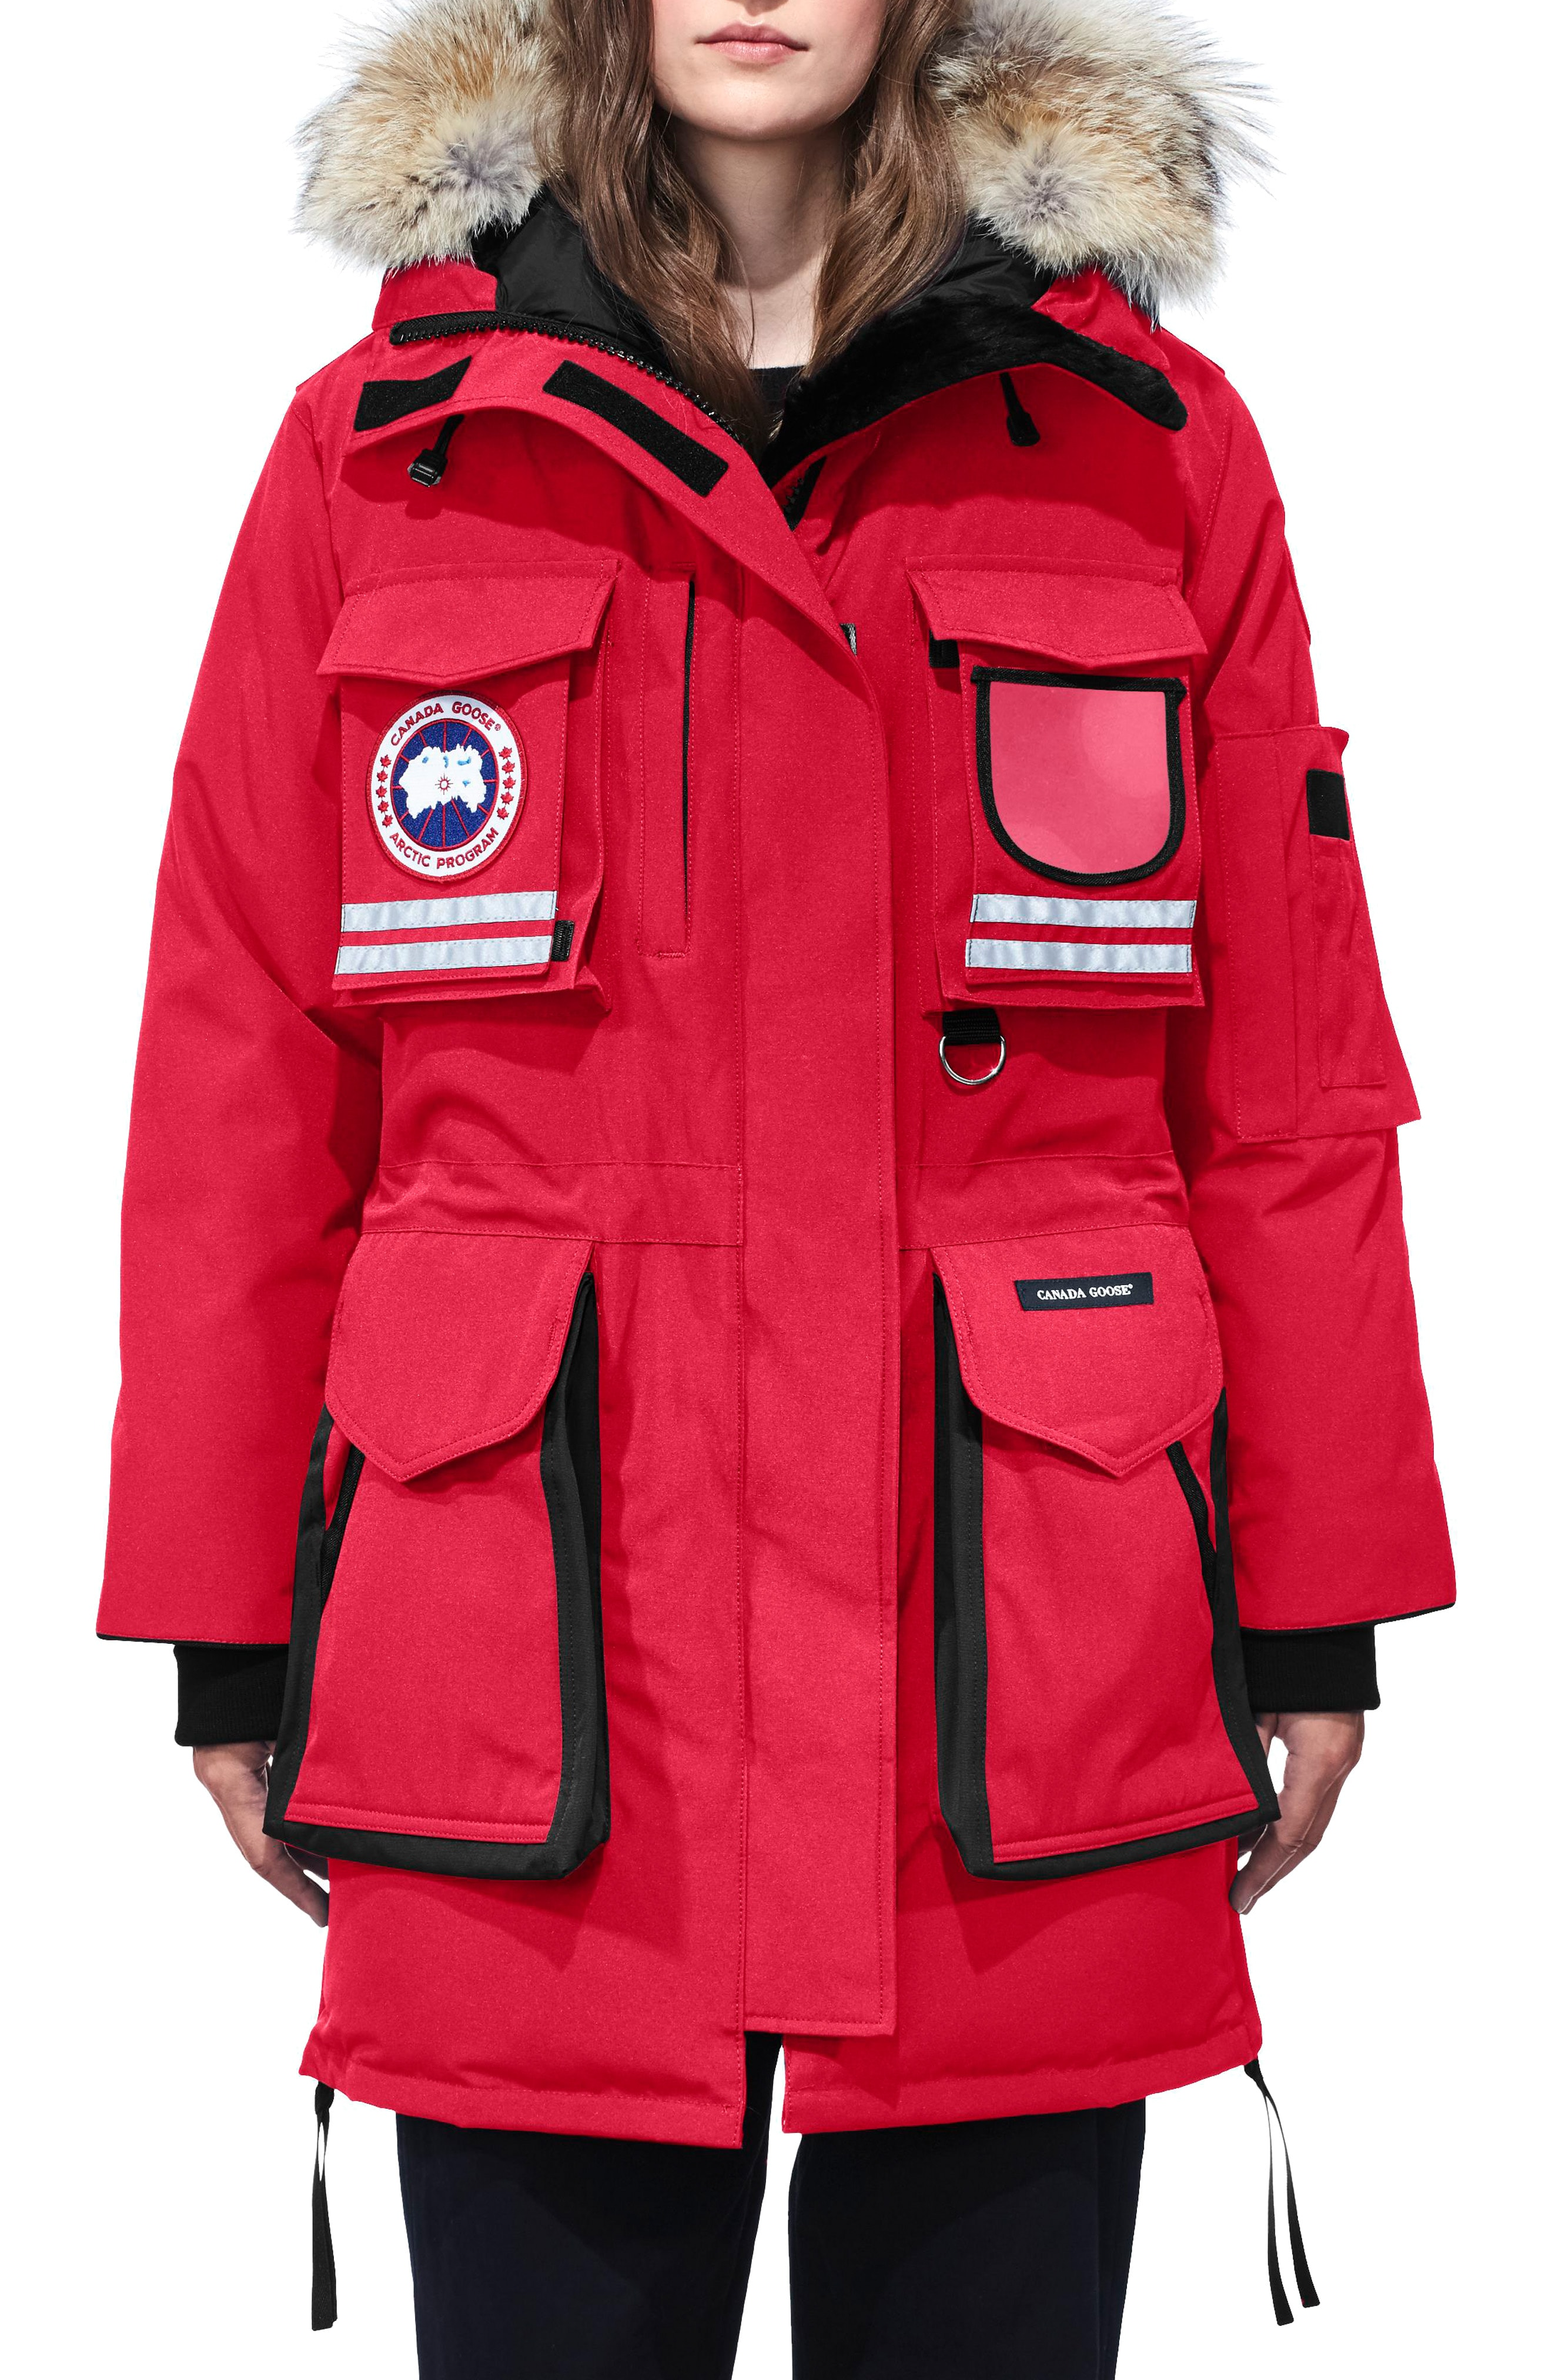 Canada Goose Snow Mantra Extreme Weather 675-Fill Power Down Arctic Tech Parka with Genuine Coyote Fur Trim